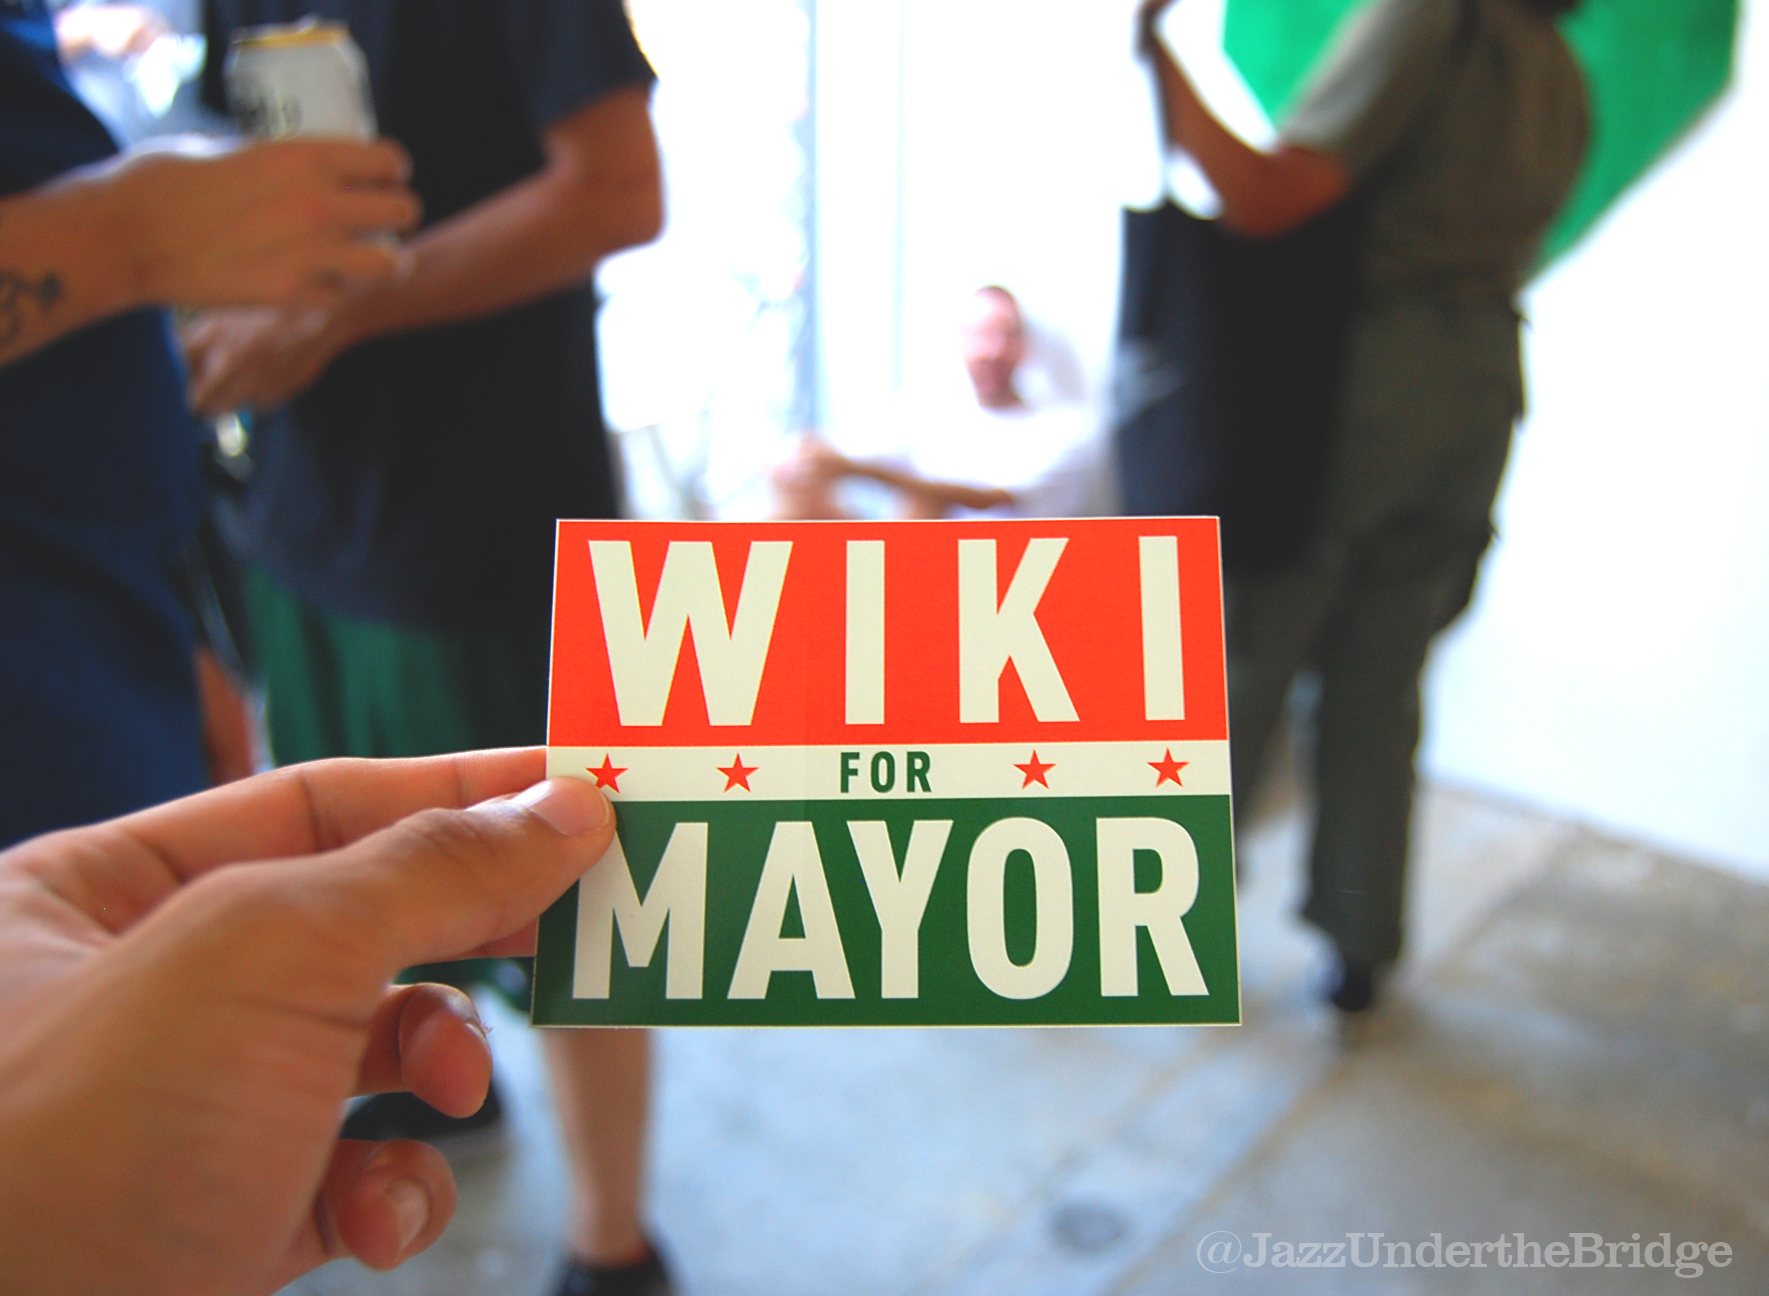 WIKI for Mayor!